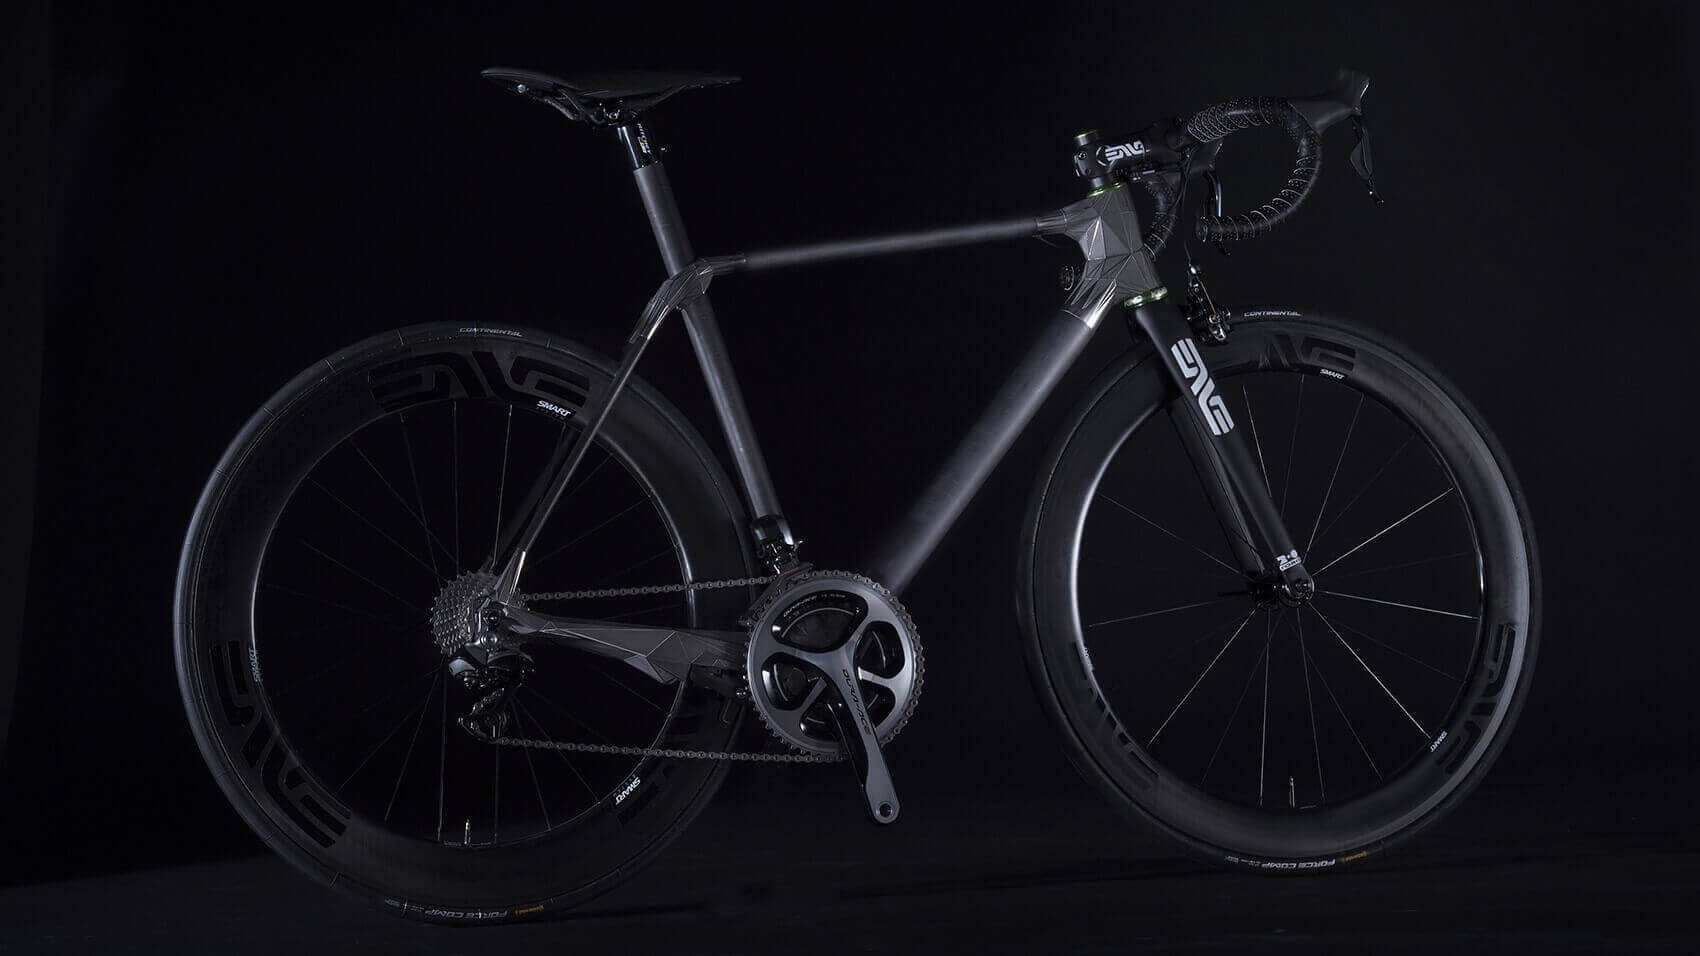 World's First Fully 3D Printed Road Racing Bike | All3DP